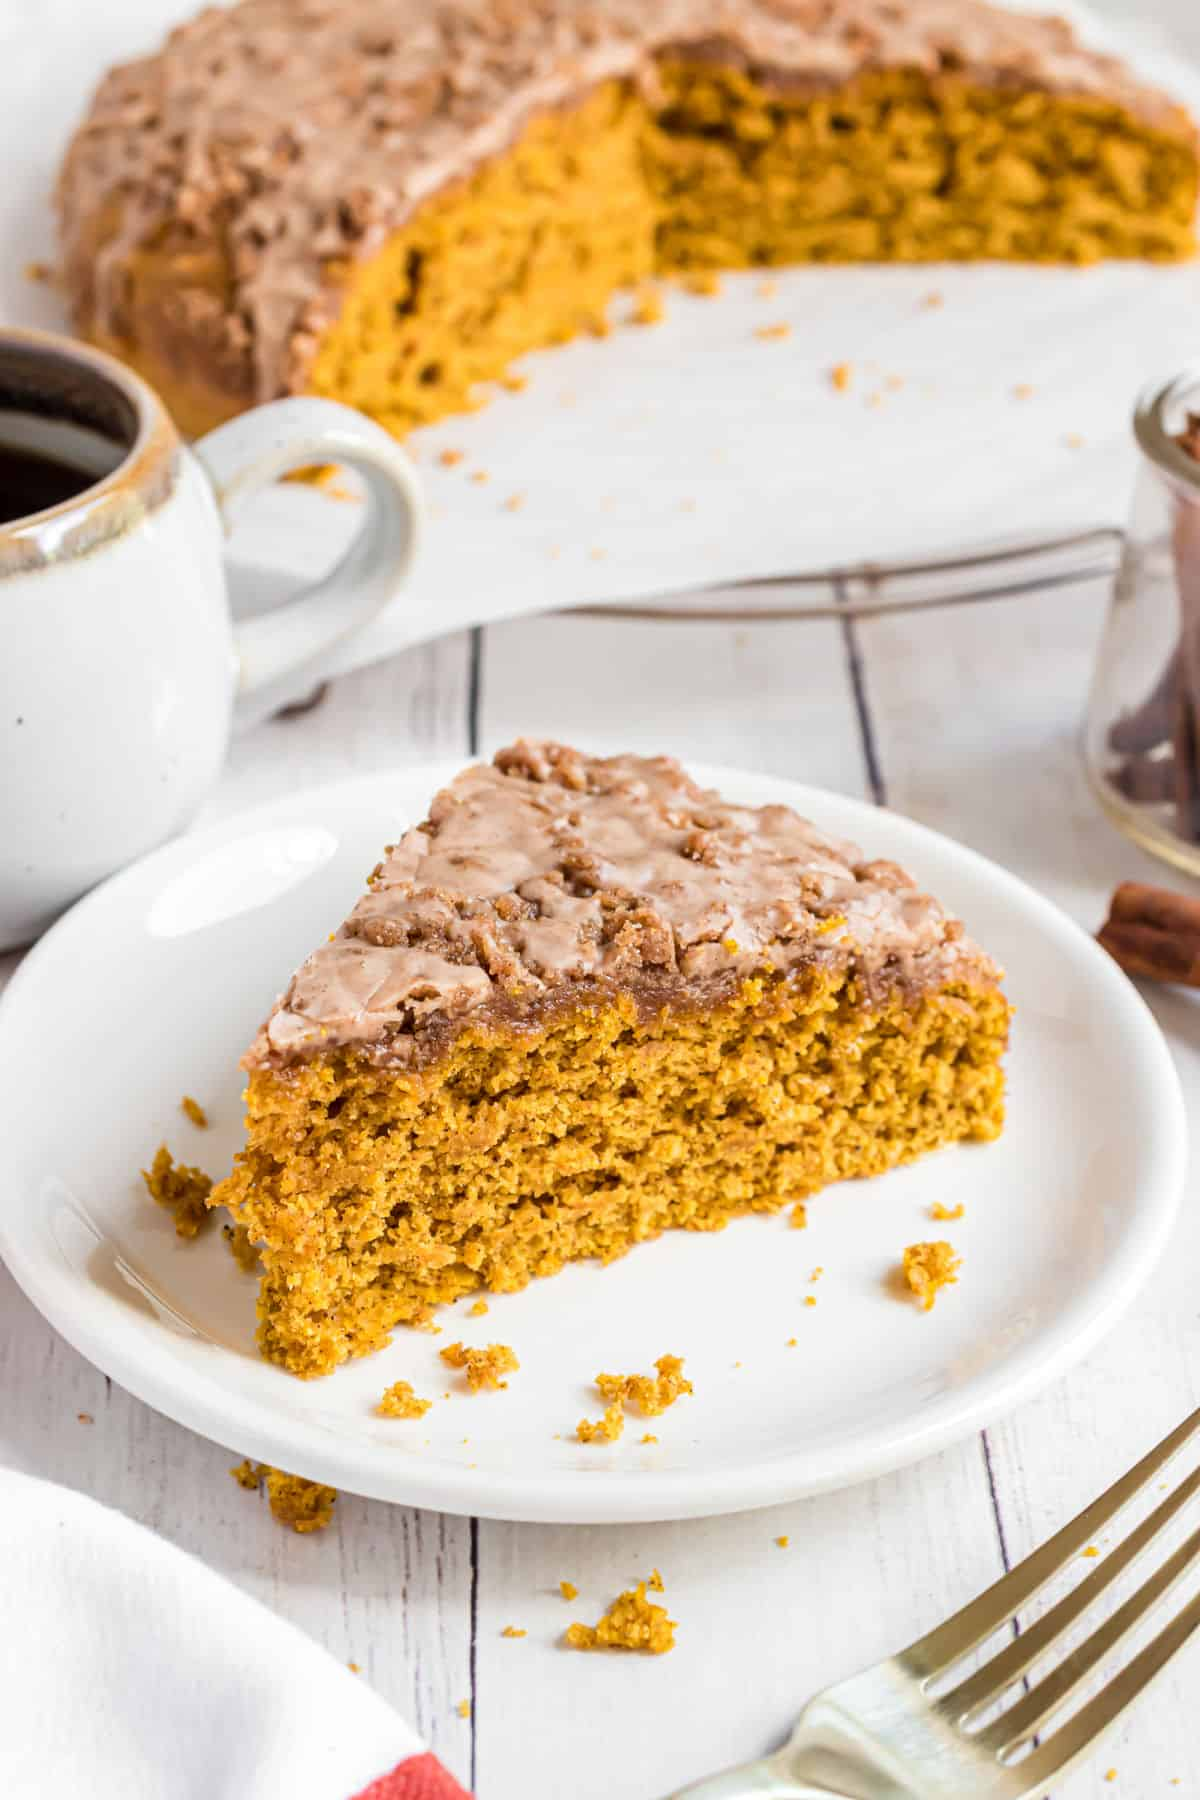 Slice of pumpkin coffee cake served on a white plate.